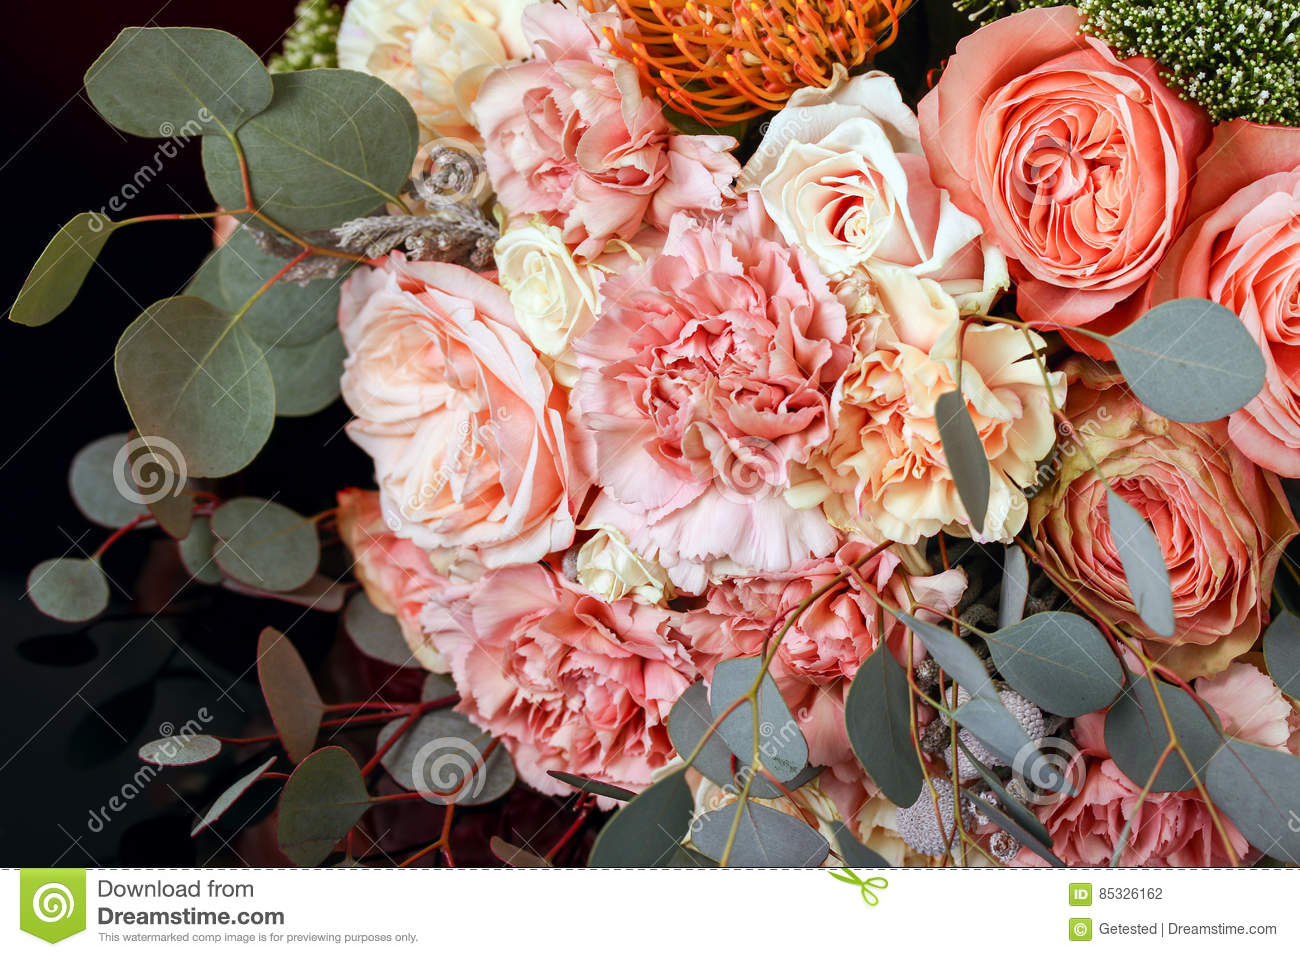 Download Bouquet of roses stock photo. Image of farewell, colour - 85326162